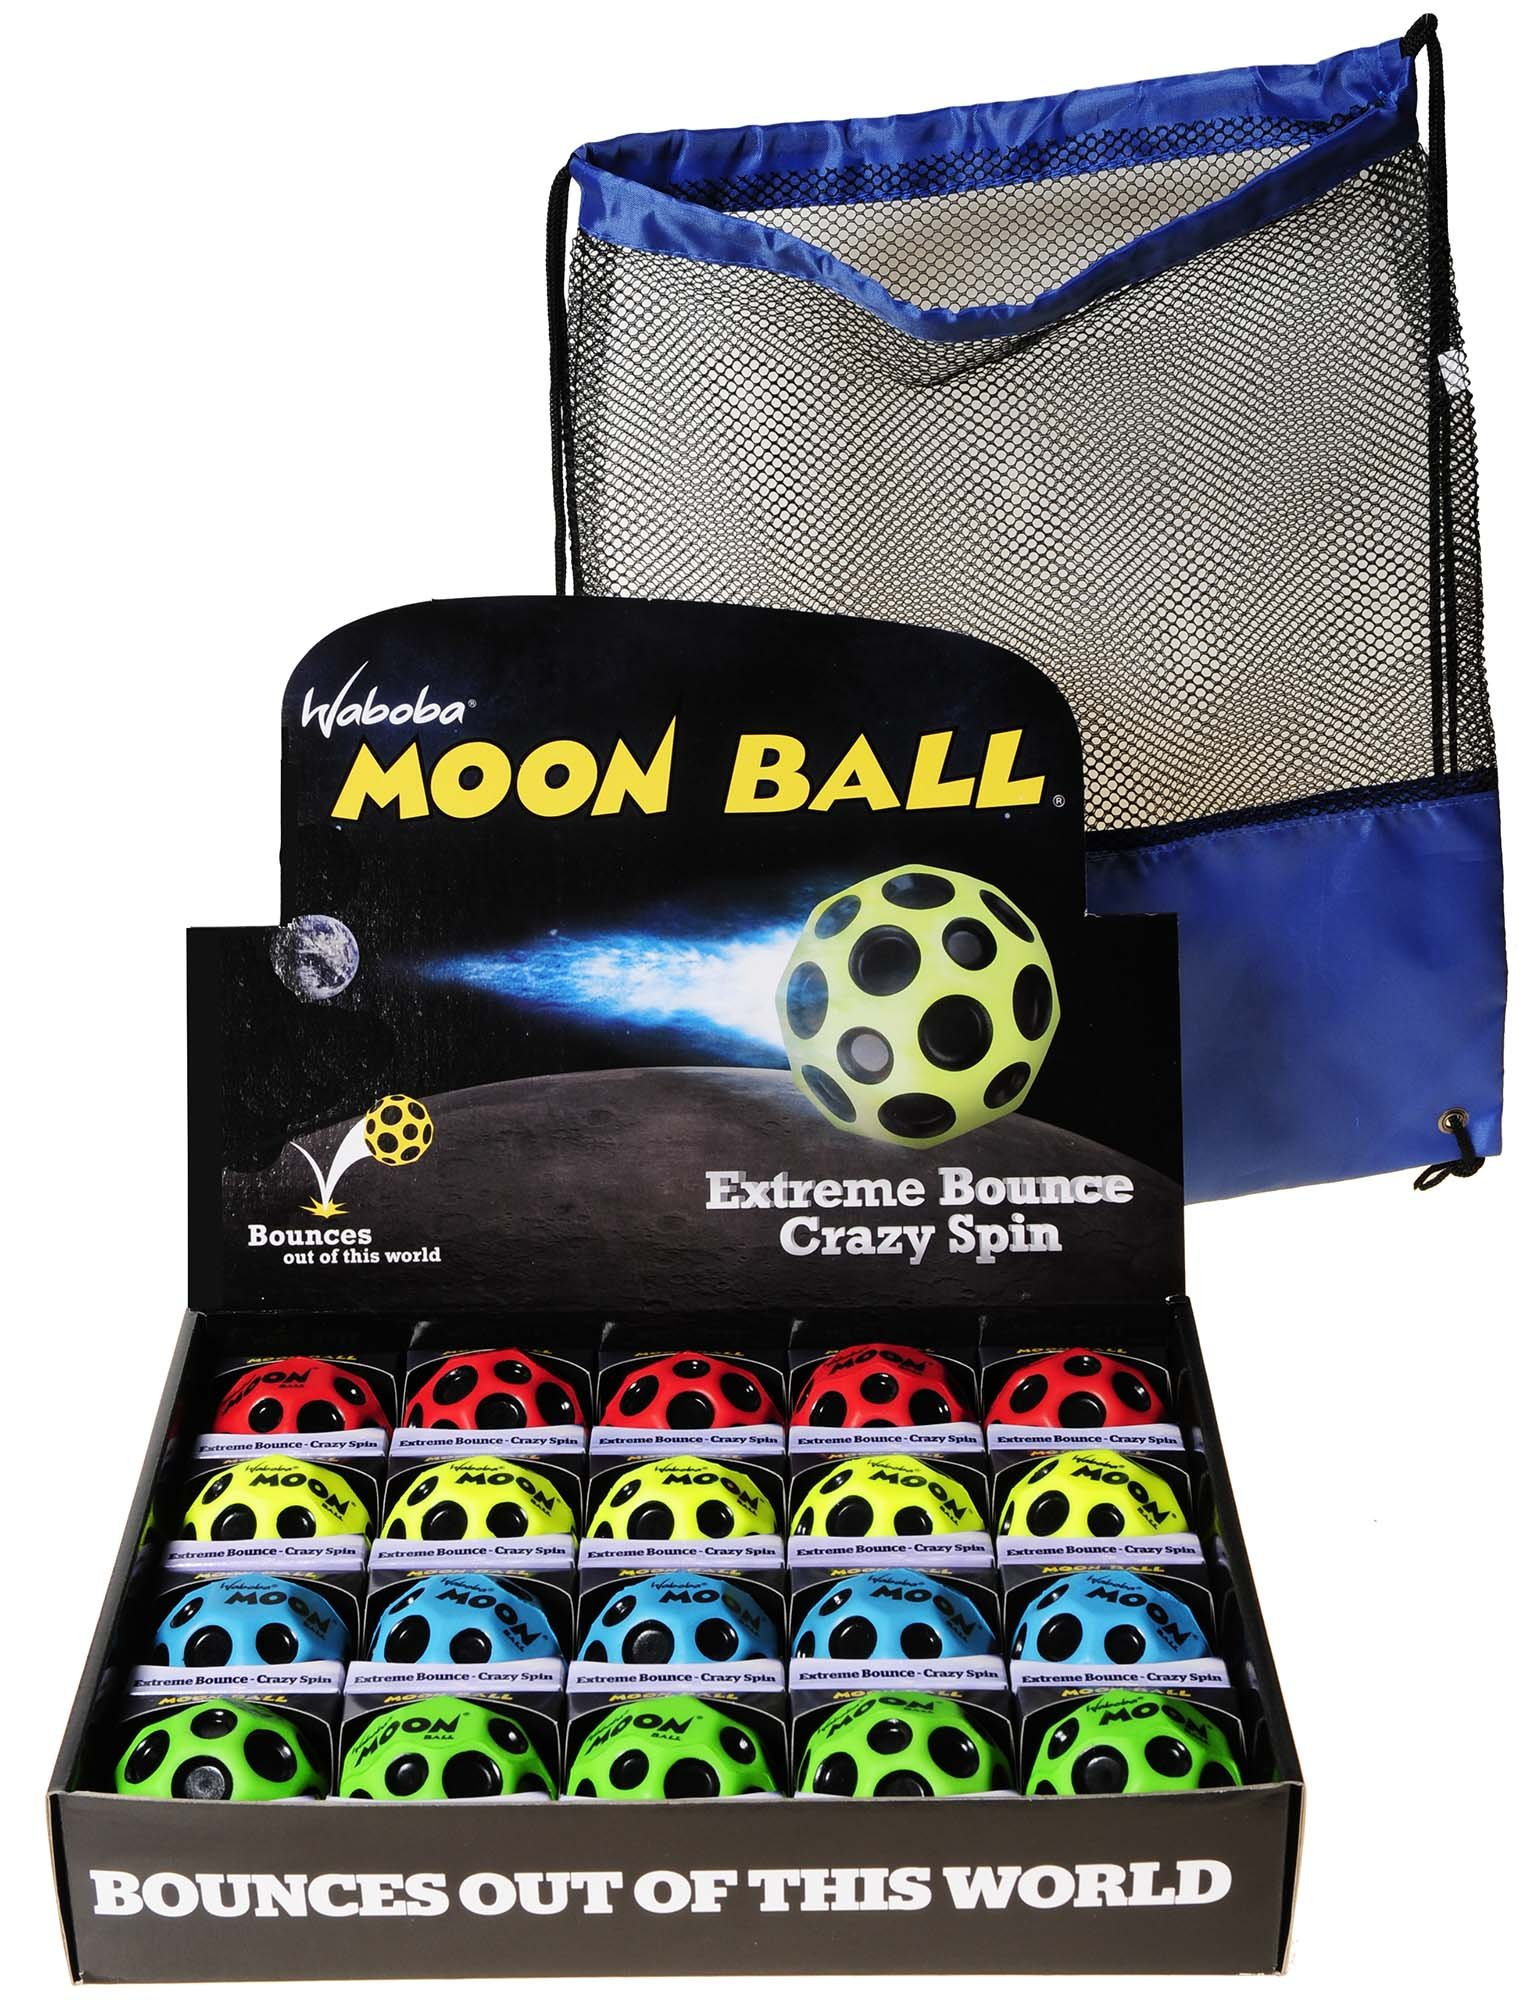 Waboba MOON Extreme Bounce Balls, Bundle of 20, 5 each in 4 Neon Colors, BONUS Blue Nylon-Black Mesh Drawstring Pack, Bundled Items by Waboba (Image #1)